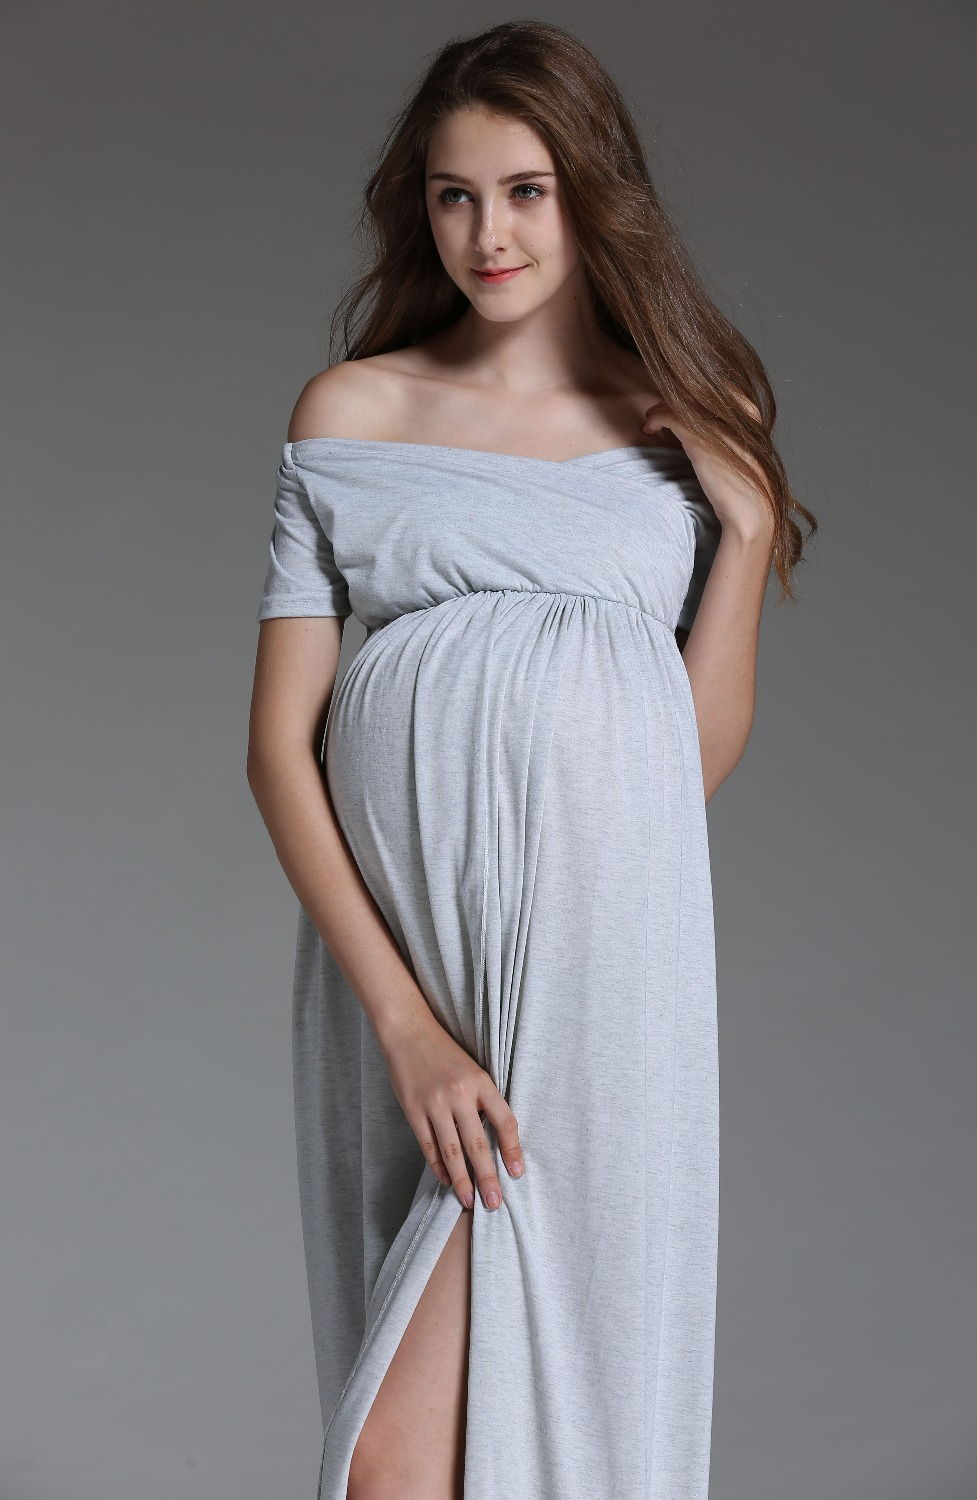 Maternity dress for baby shower plus size lace baby shower new cotton maxi maternity dress summer clothes for pregnant women long dresses for photography shoot baby shower dresses ombrellifo Choice Image